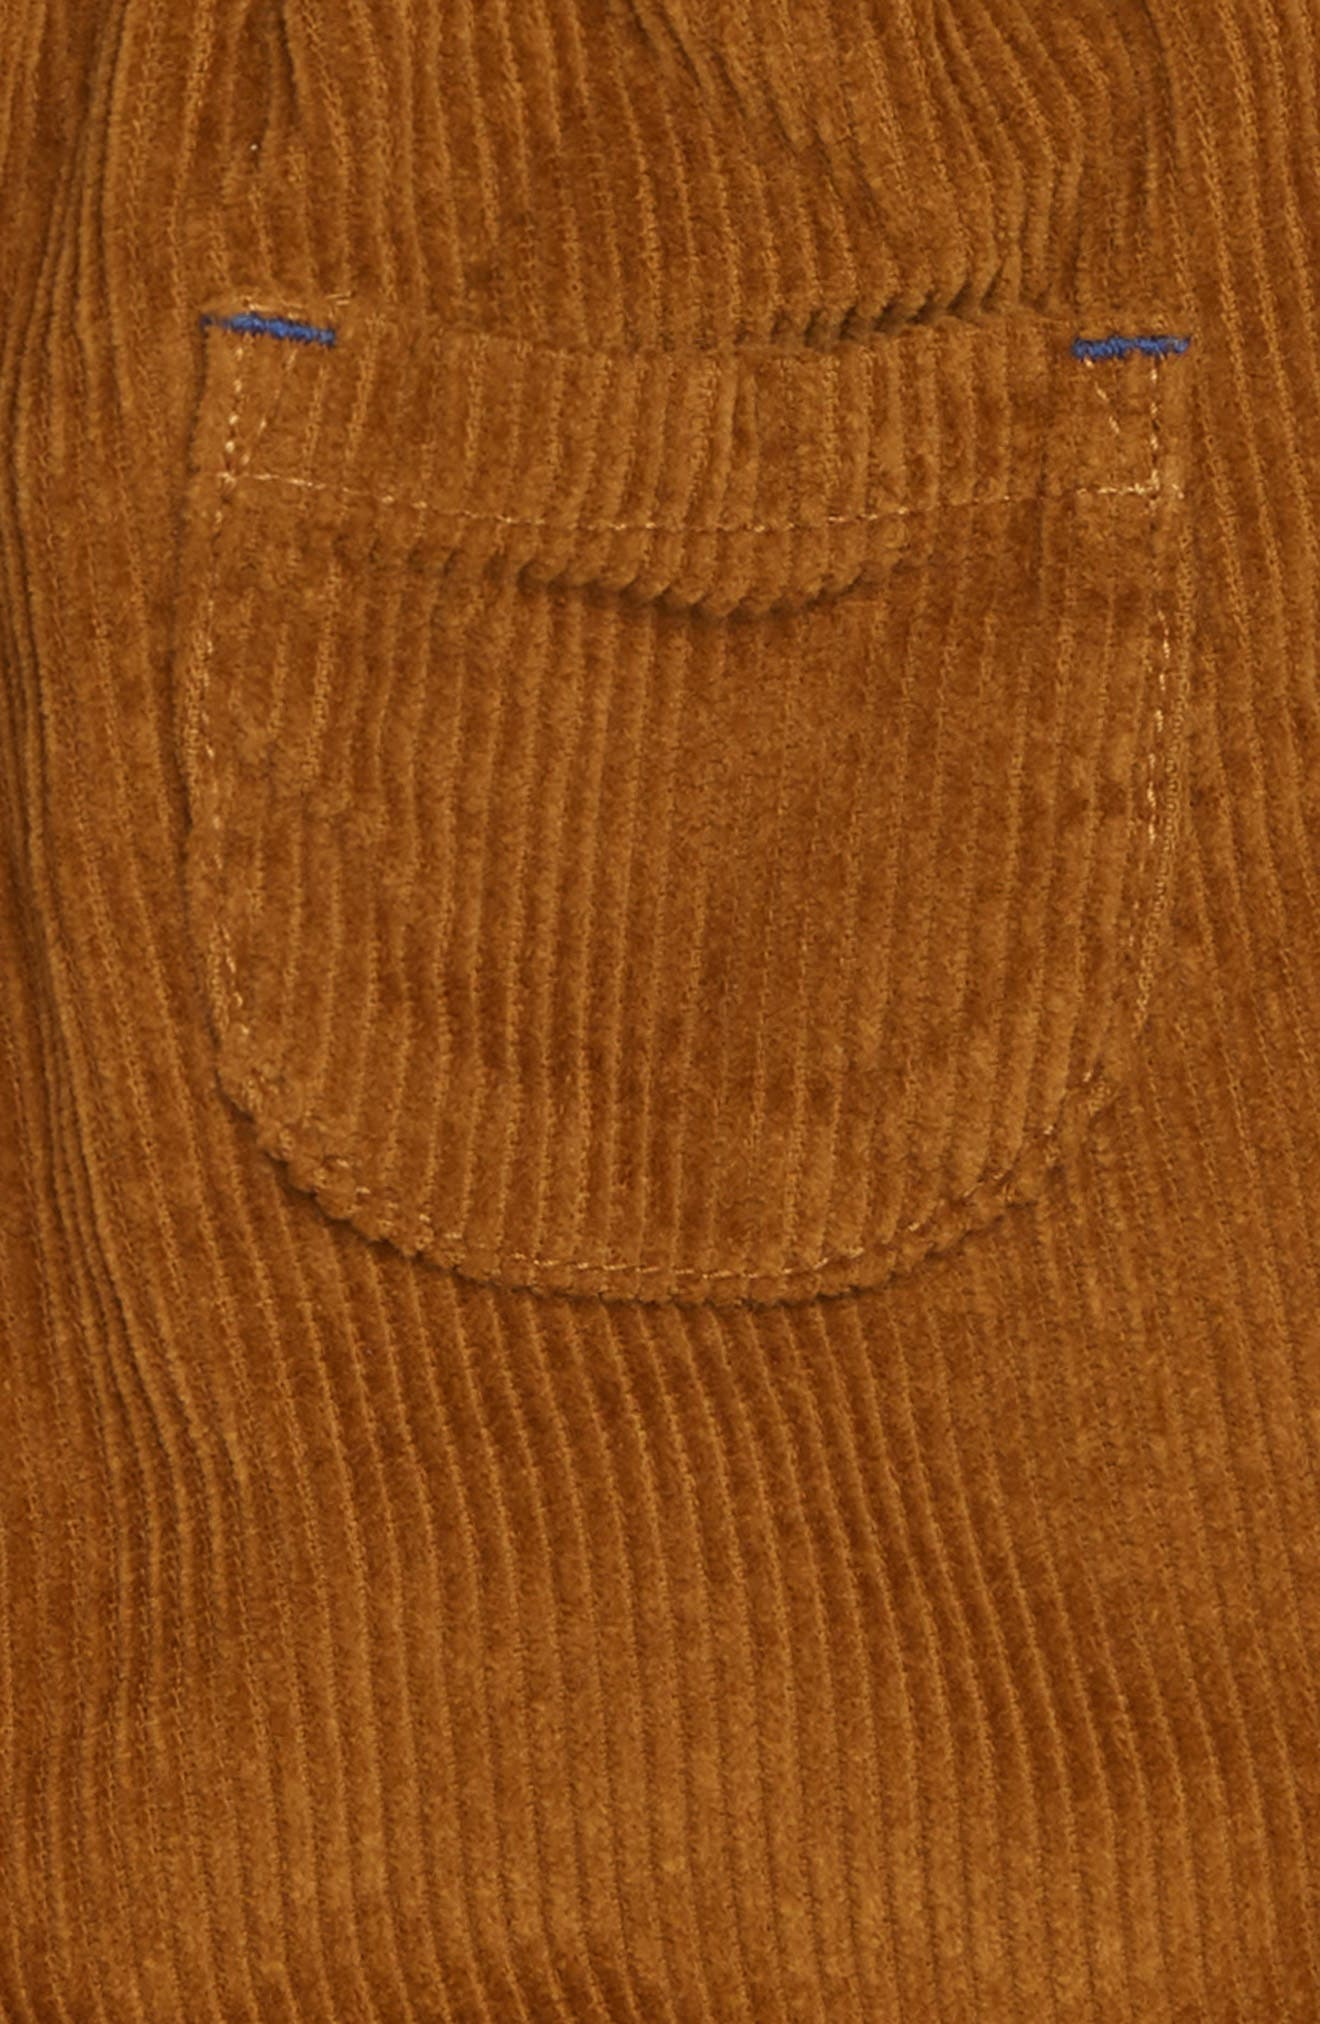 Lined Corduroy Trousers,                             Alternate thumbnail 3, color,                             TEDDY BEAR BROWN